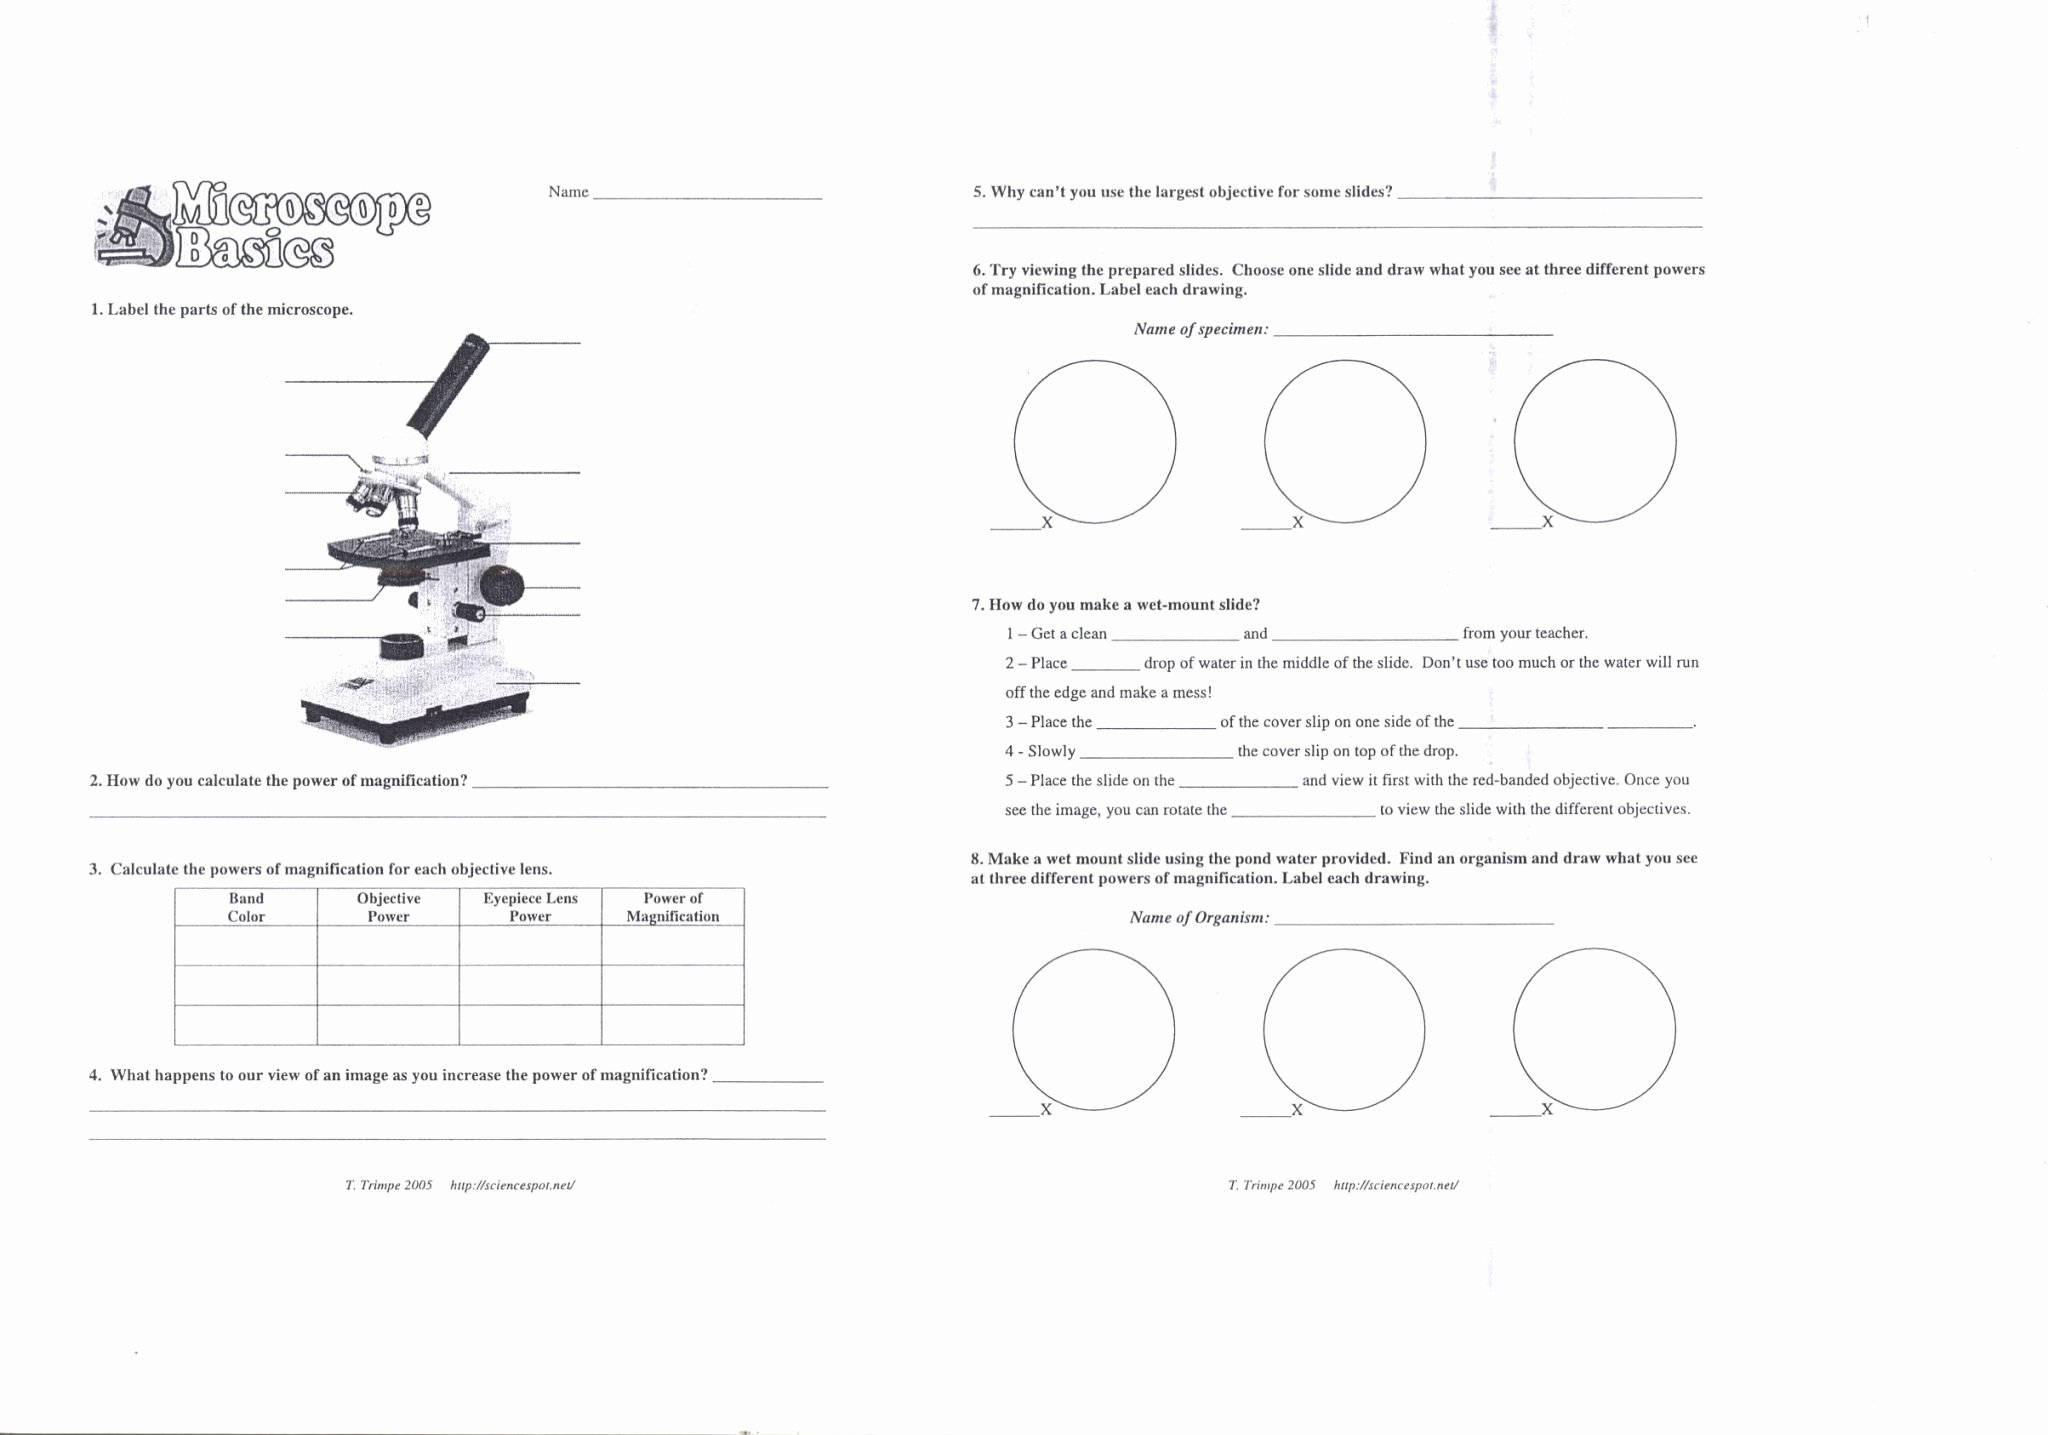 Microscope Parts and Use Worksheet Elegant Using A Microscope Worksheet